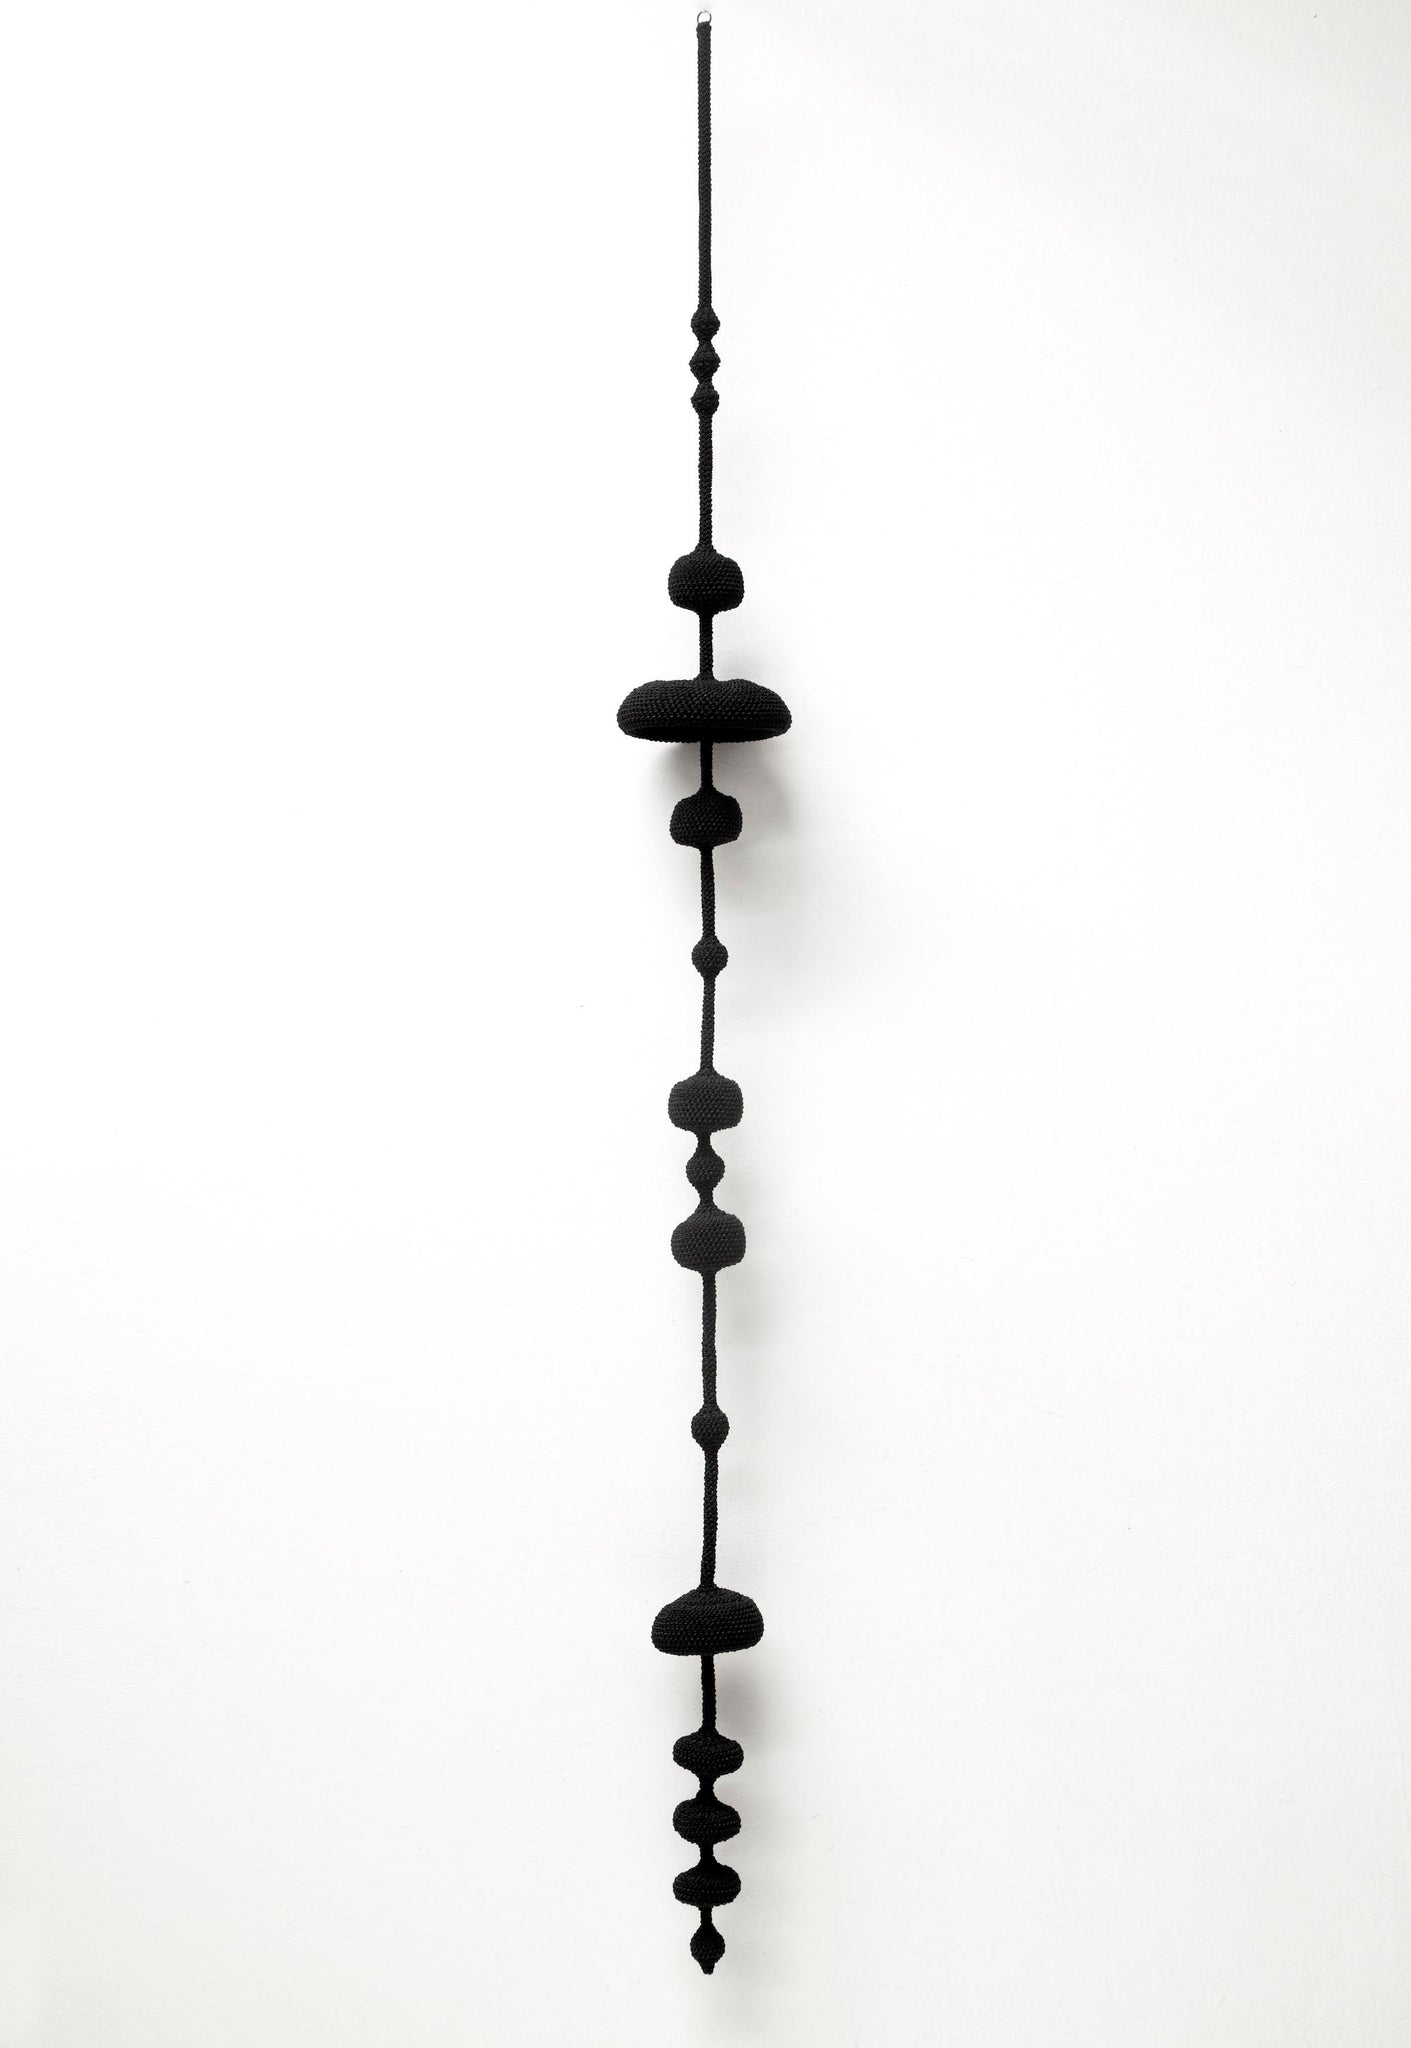 Totem 2 Hanging Sculpture, 2019